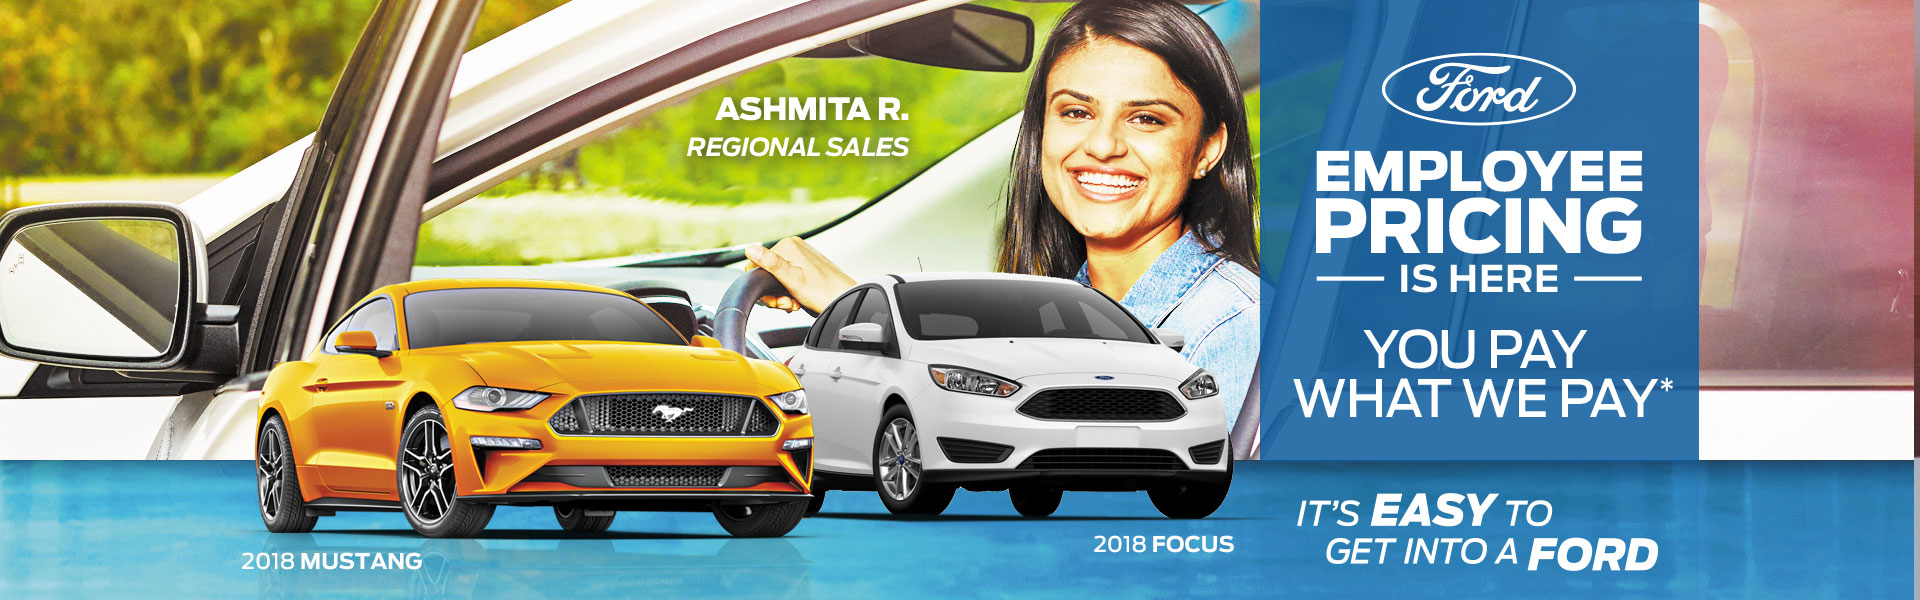 Edmonton Ford Employee Pricing Event! Including Ford Focus and Mustang!